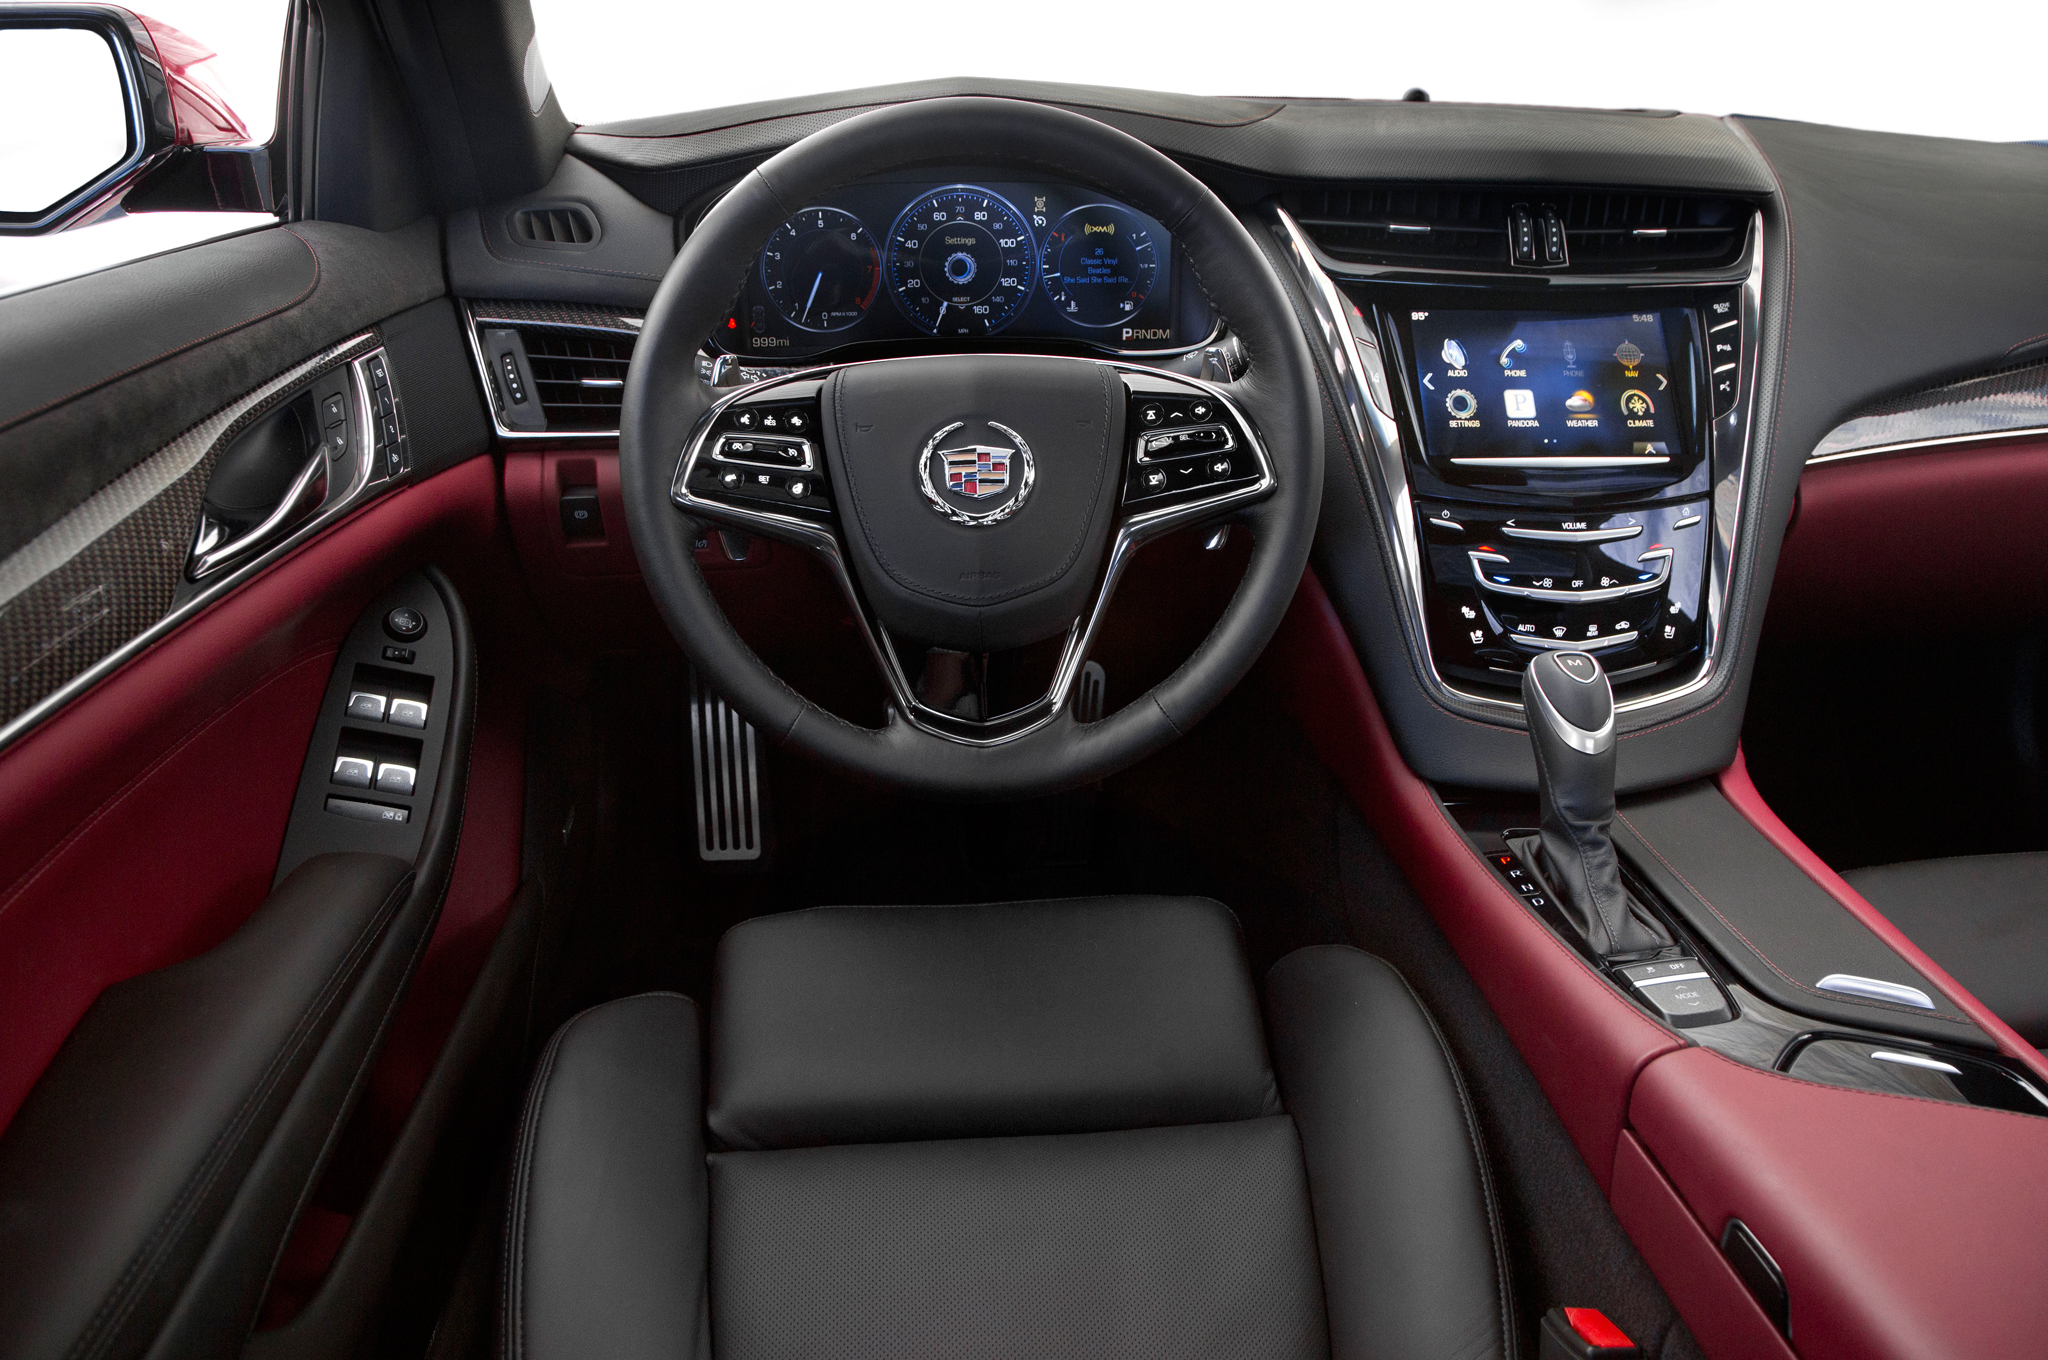 2014 cadillac cts 3 6 interior mcgrath auto blog. Black Bedroom Furniture Sets. Home Design Ideas